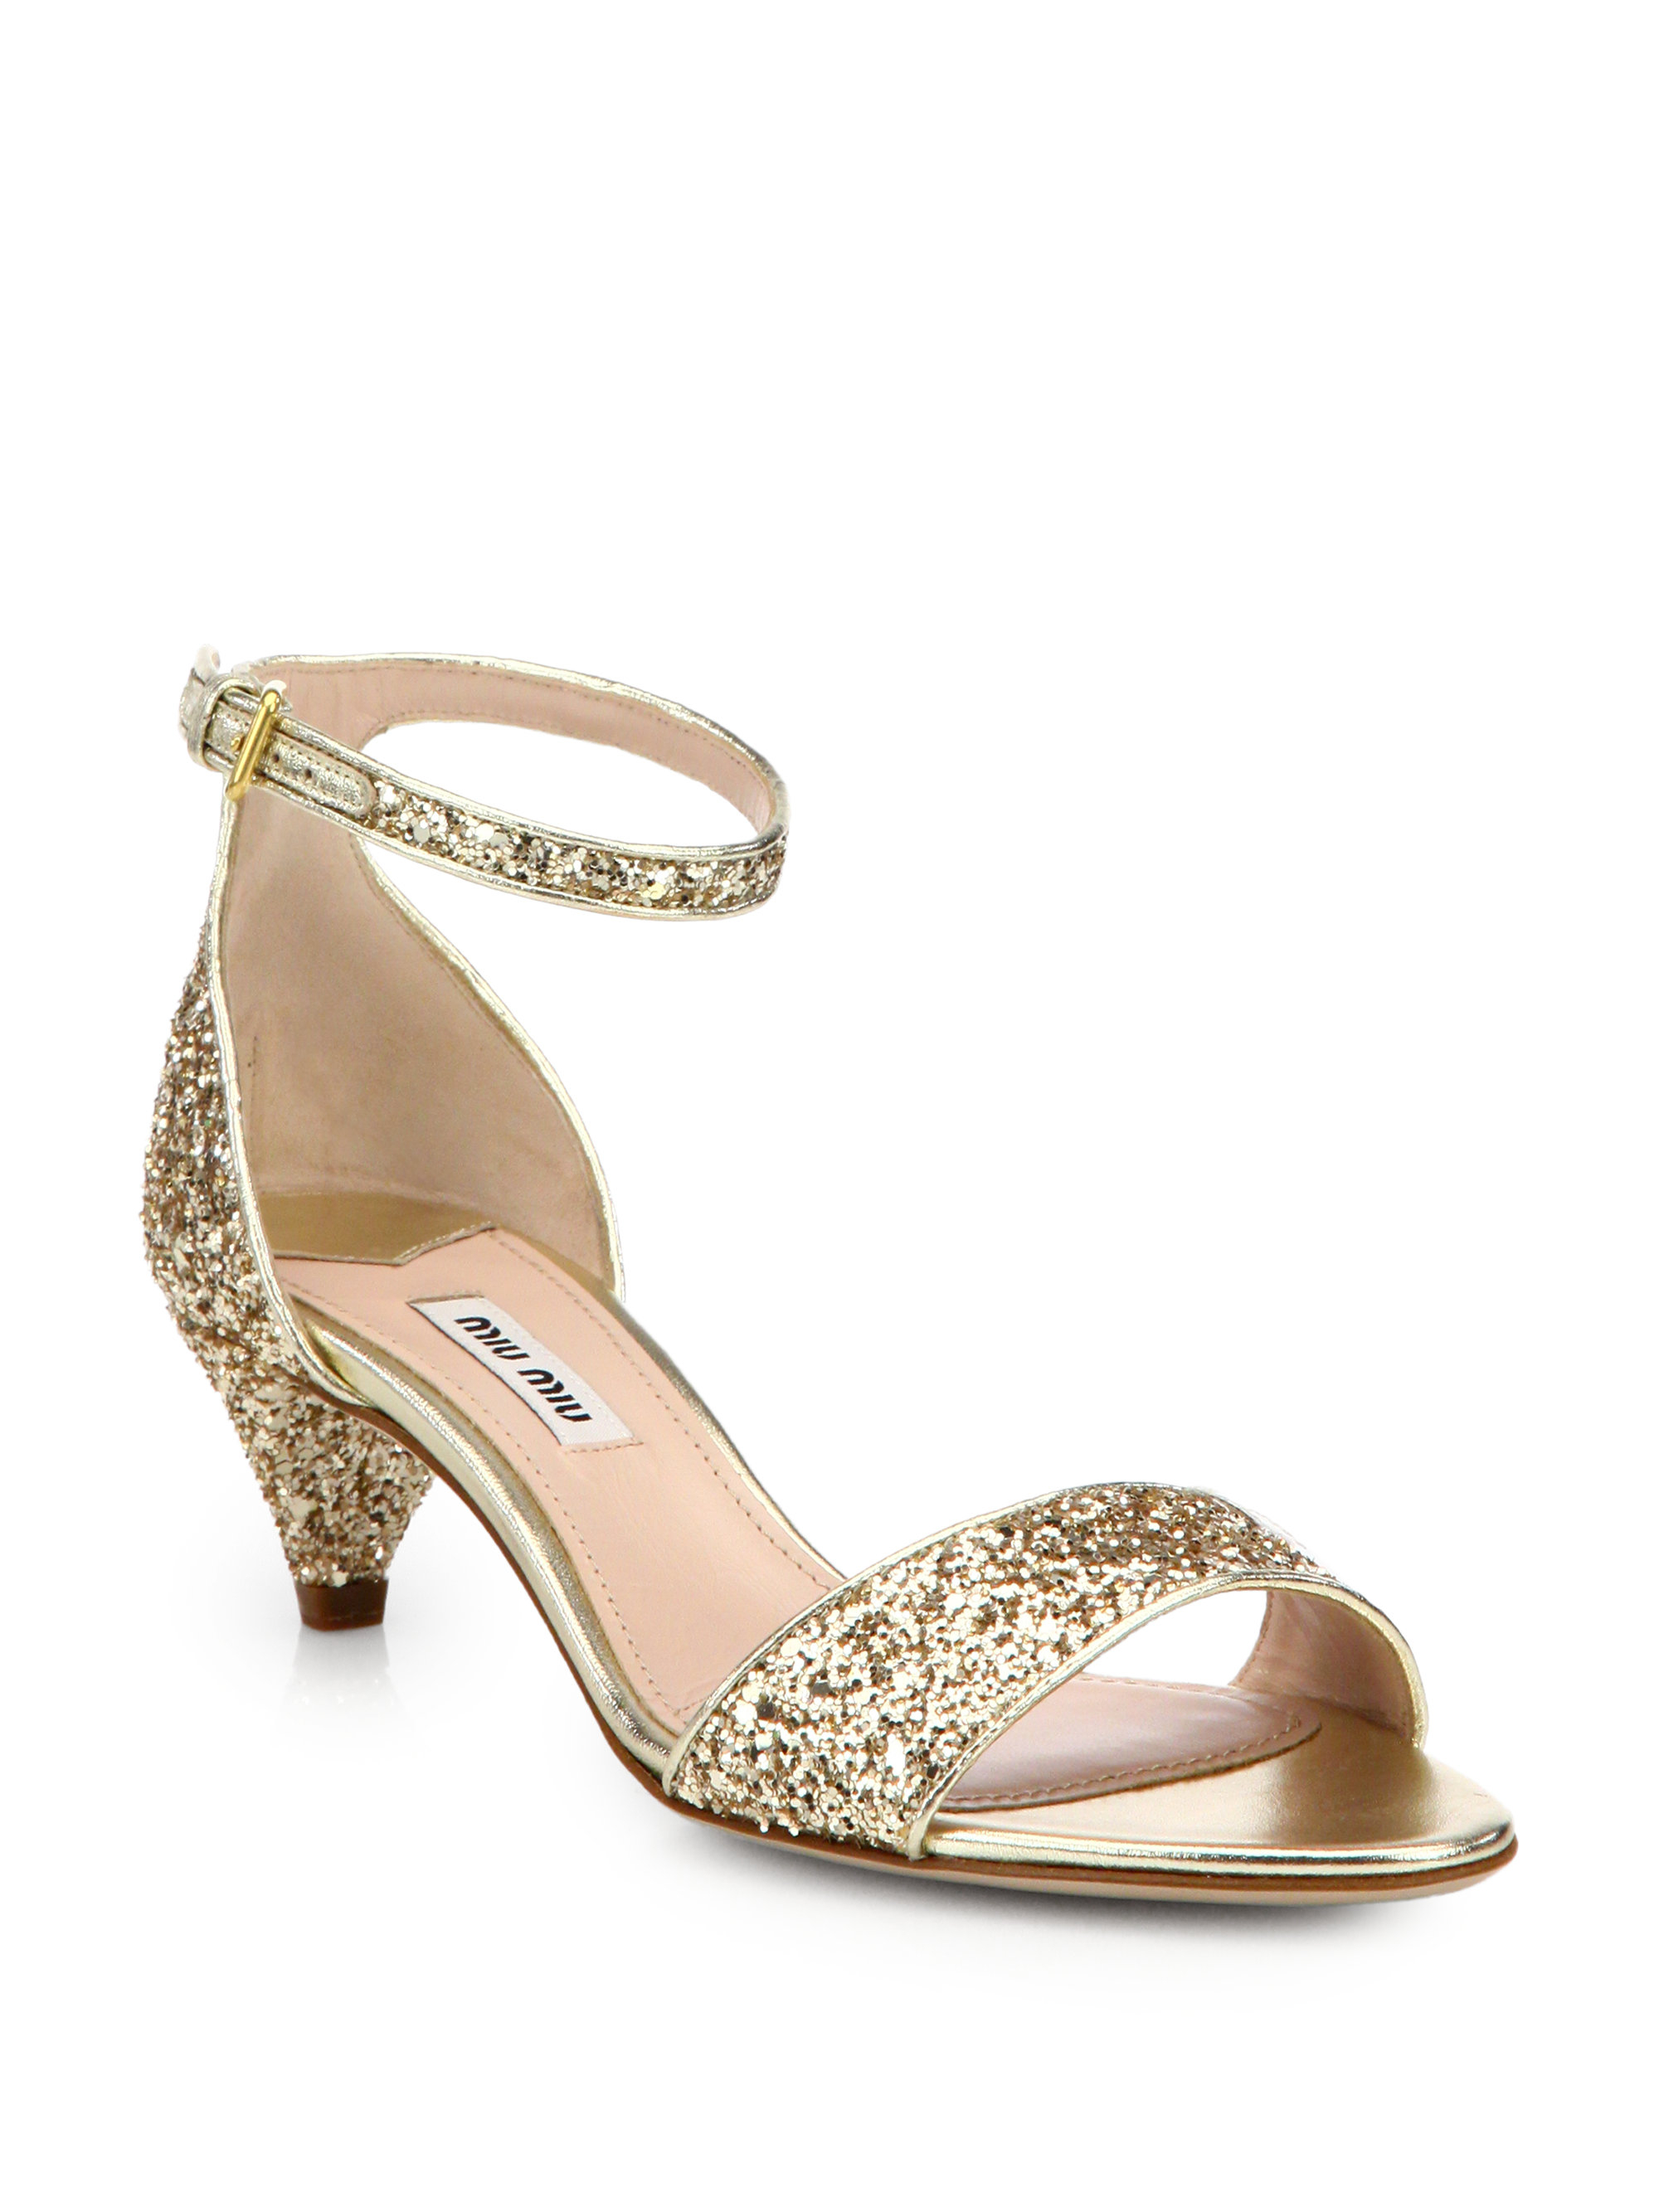 Gold Kitten Heel Sandals - Qu Heel